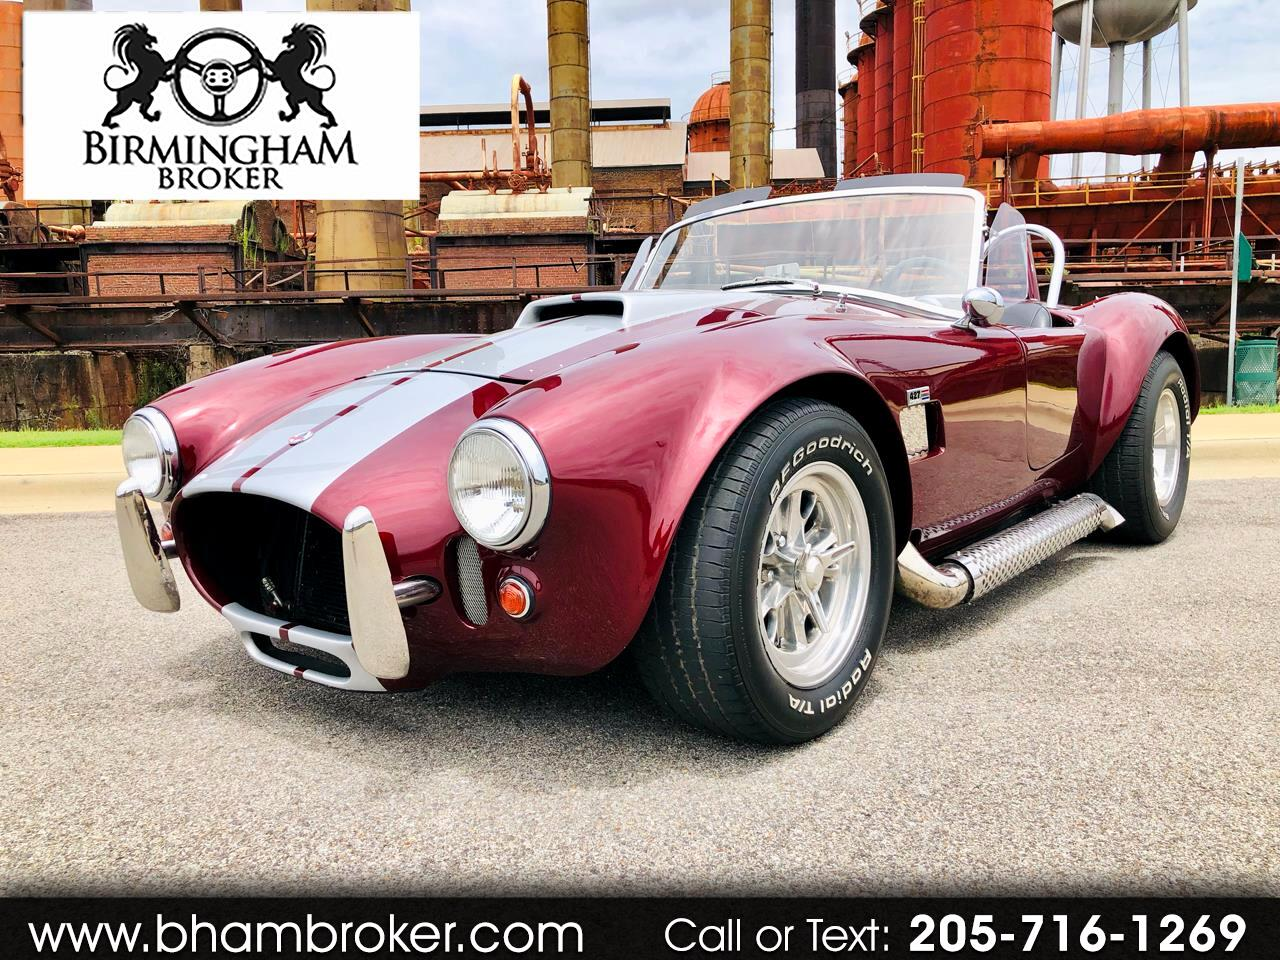 2005 Cobra Replica Backdraft Roadster Base